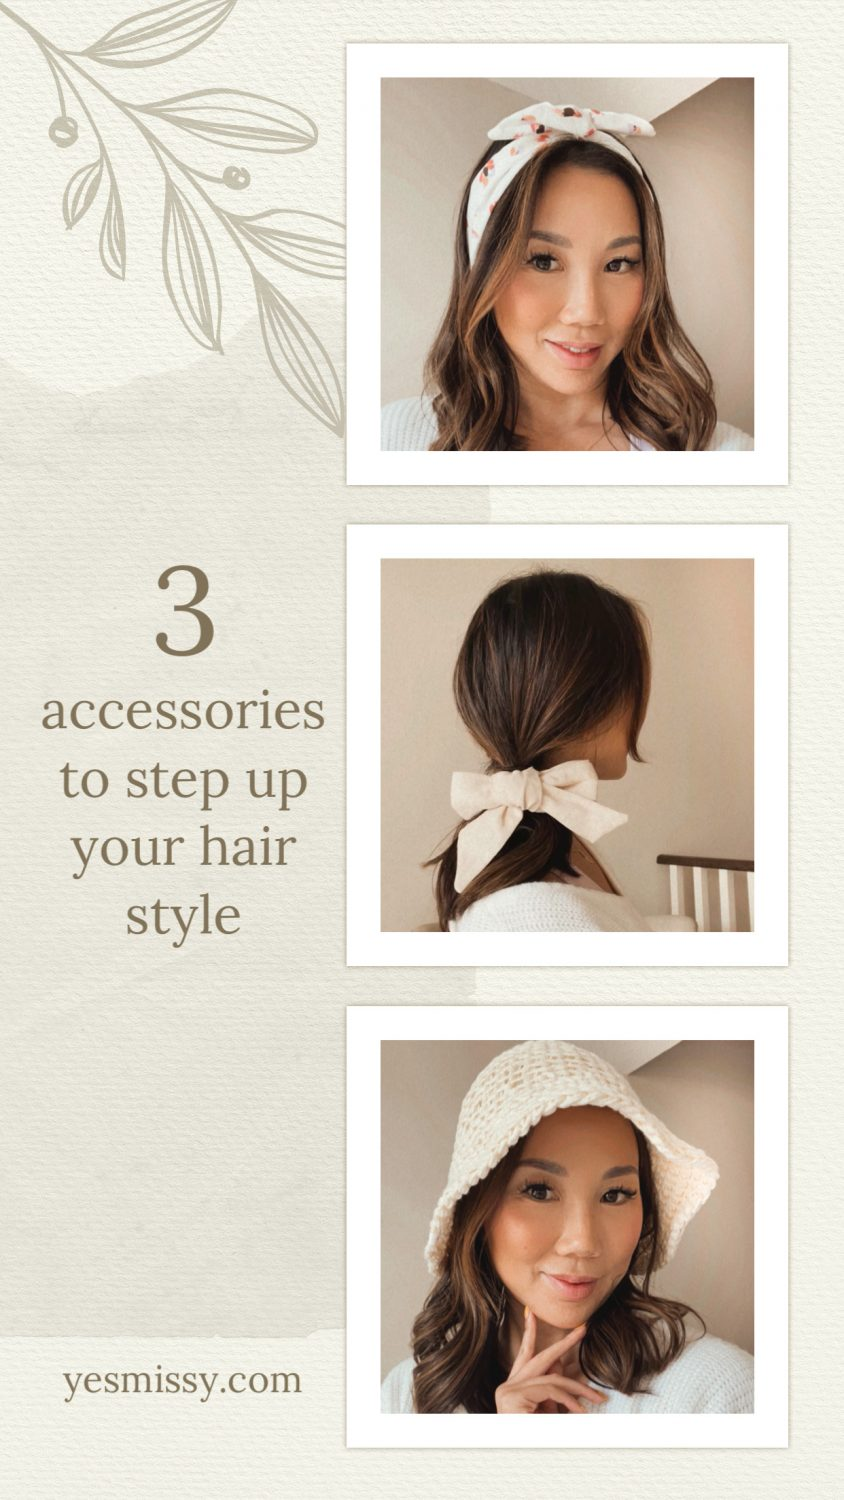 Bored with your hair? here are 3 accessories to step up your hair style. More on yesmissy.com